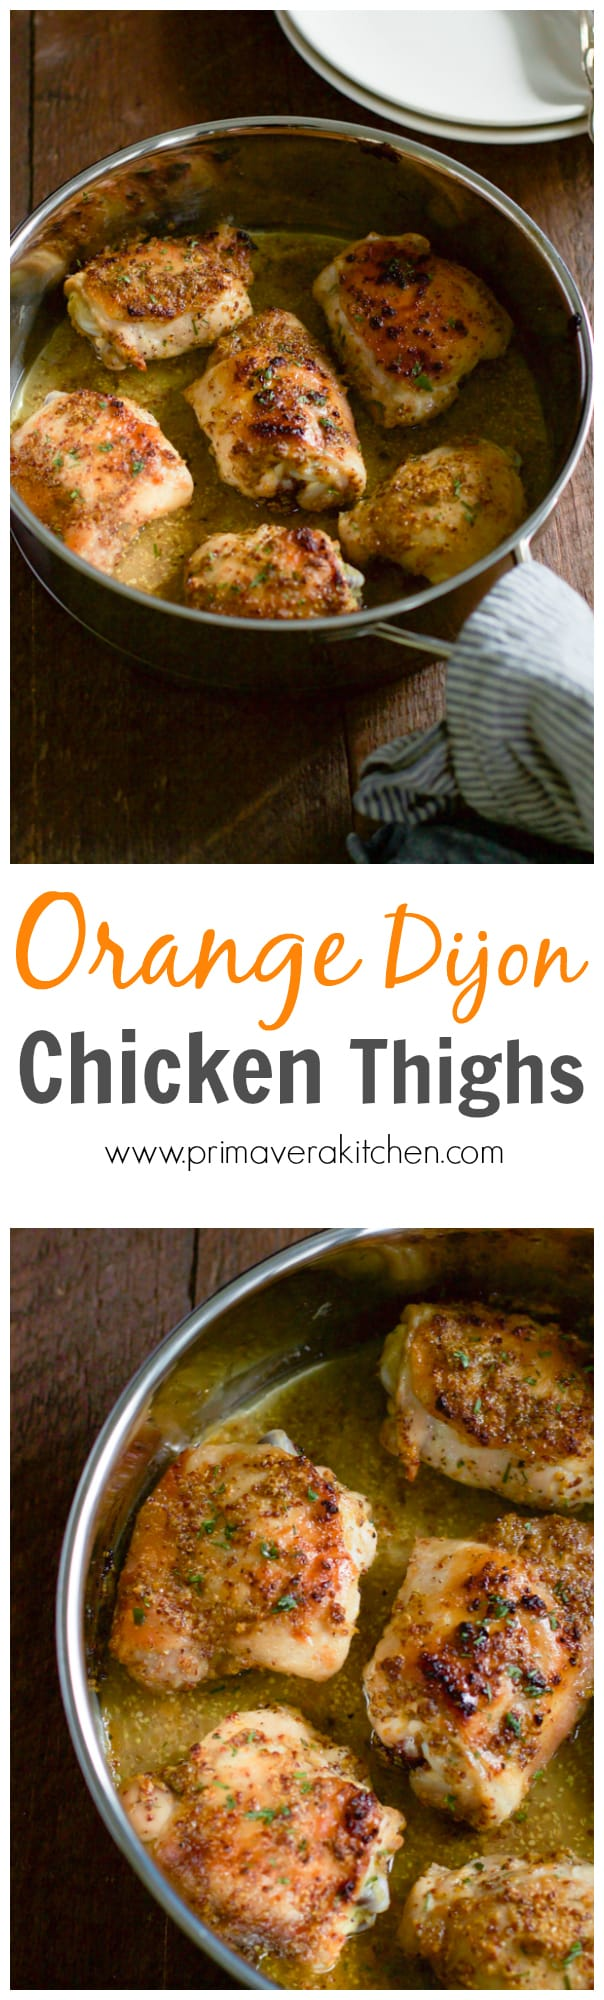 orange-dijon-chicken-thighs - This Orange Dijon Chicken Thighs recipe only requires 4-ingredient, it takes only 5 minutes to prepare and it serves 6 people. The perfect chicken recipe for the busy weeknights!